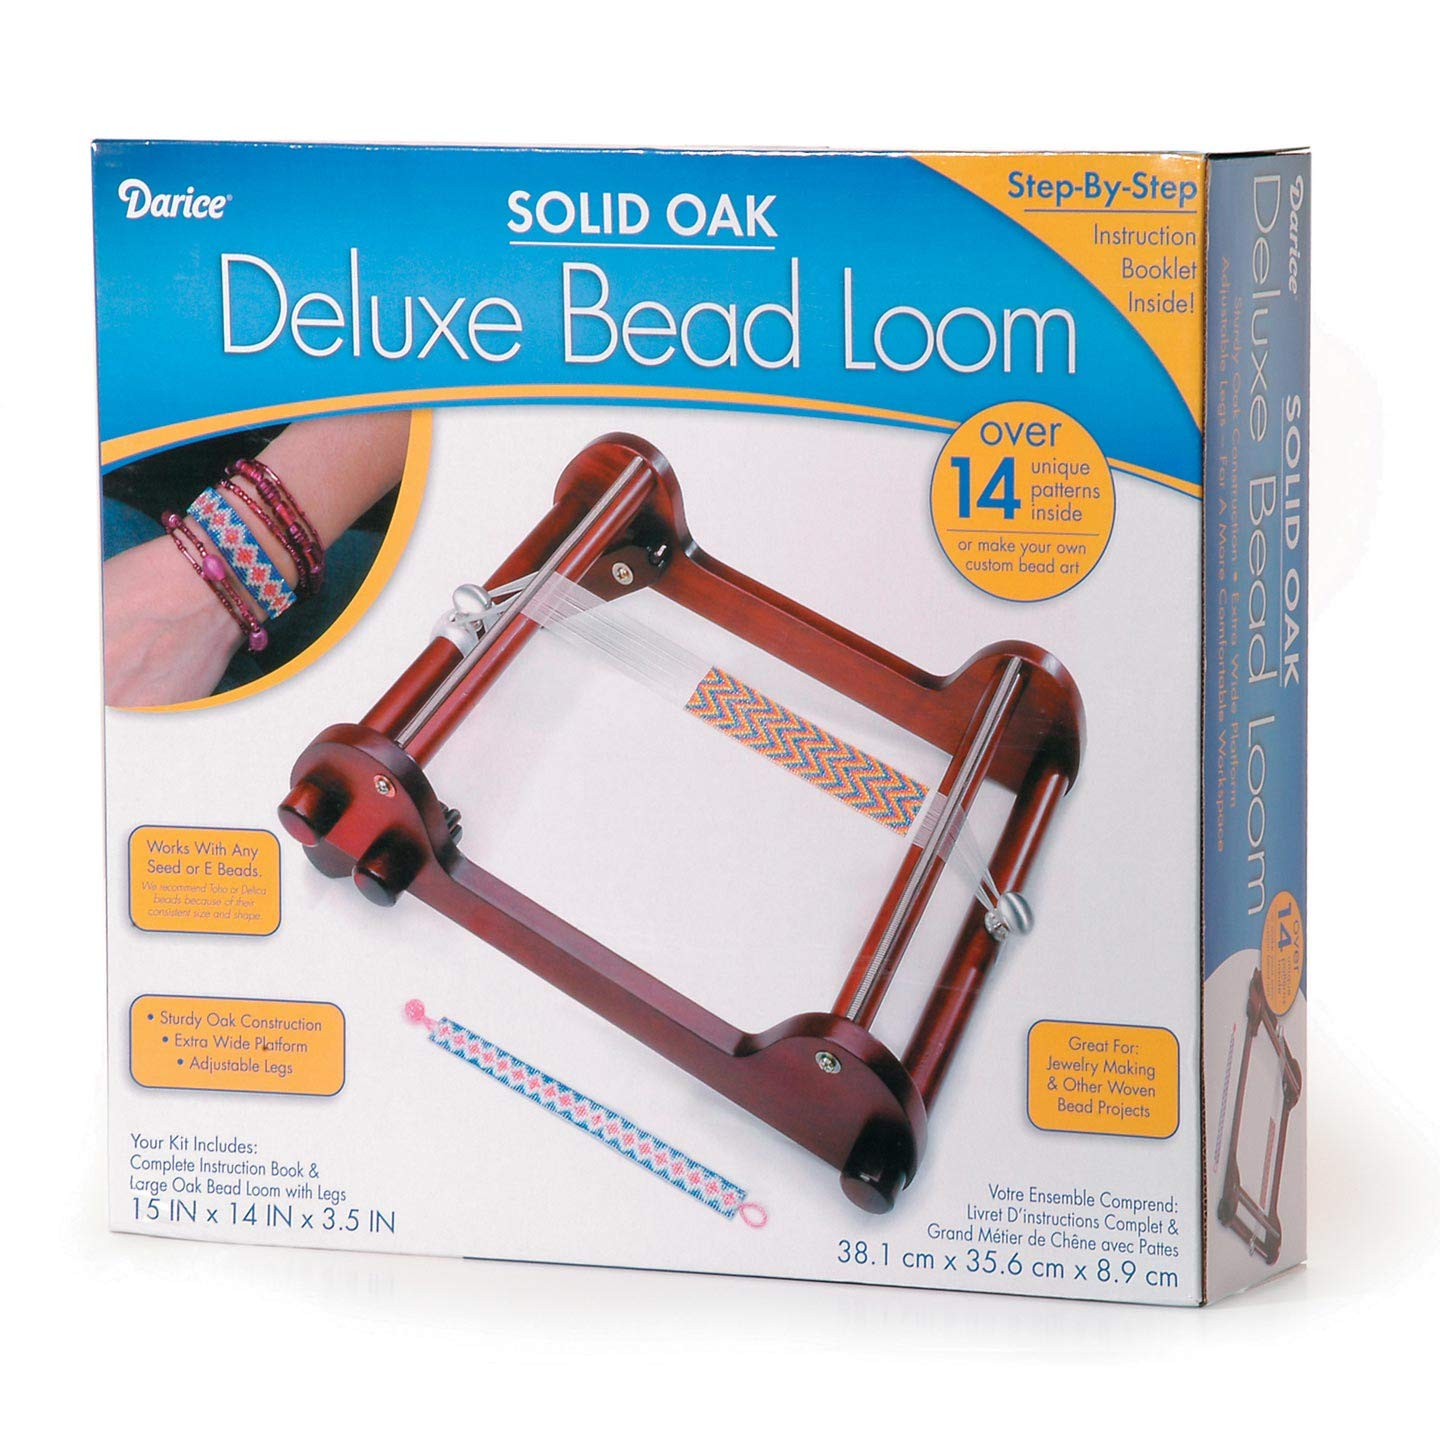 Bulk Buy: Darice DIY Crafts Deluxe Bead Loom Solid Oak 15 x 14 x 3.5 inches (3-Pack 1100-97 Inc.